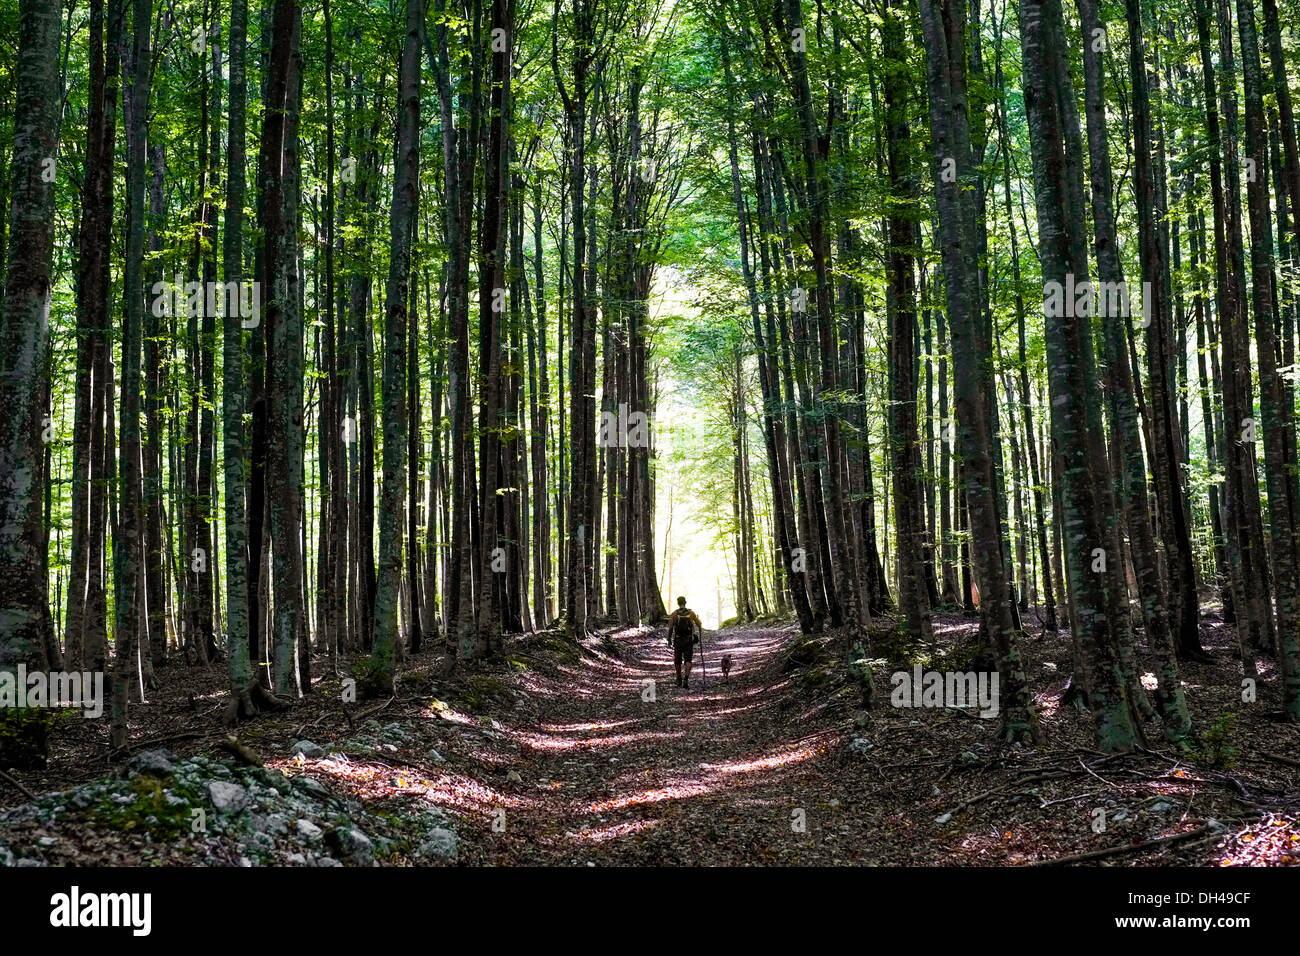 Footpath in a forest in Slovenia Stock Photo